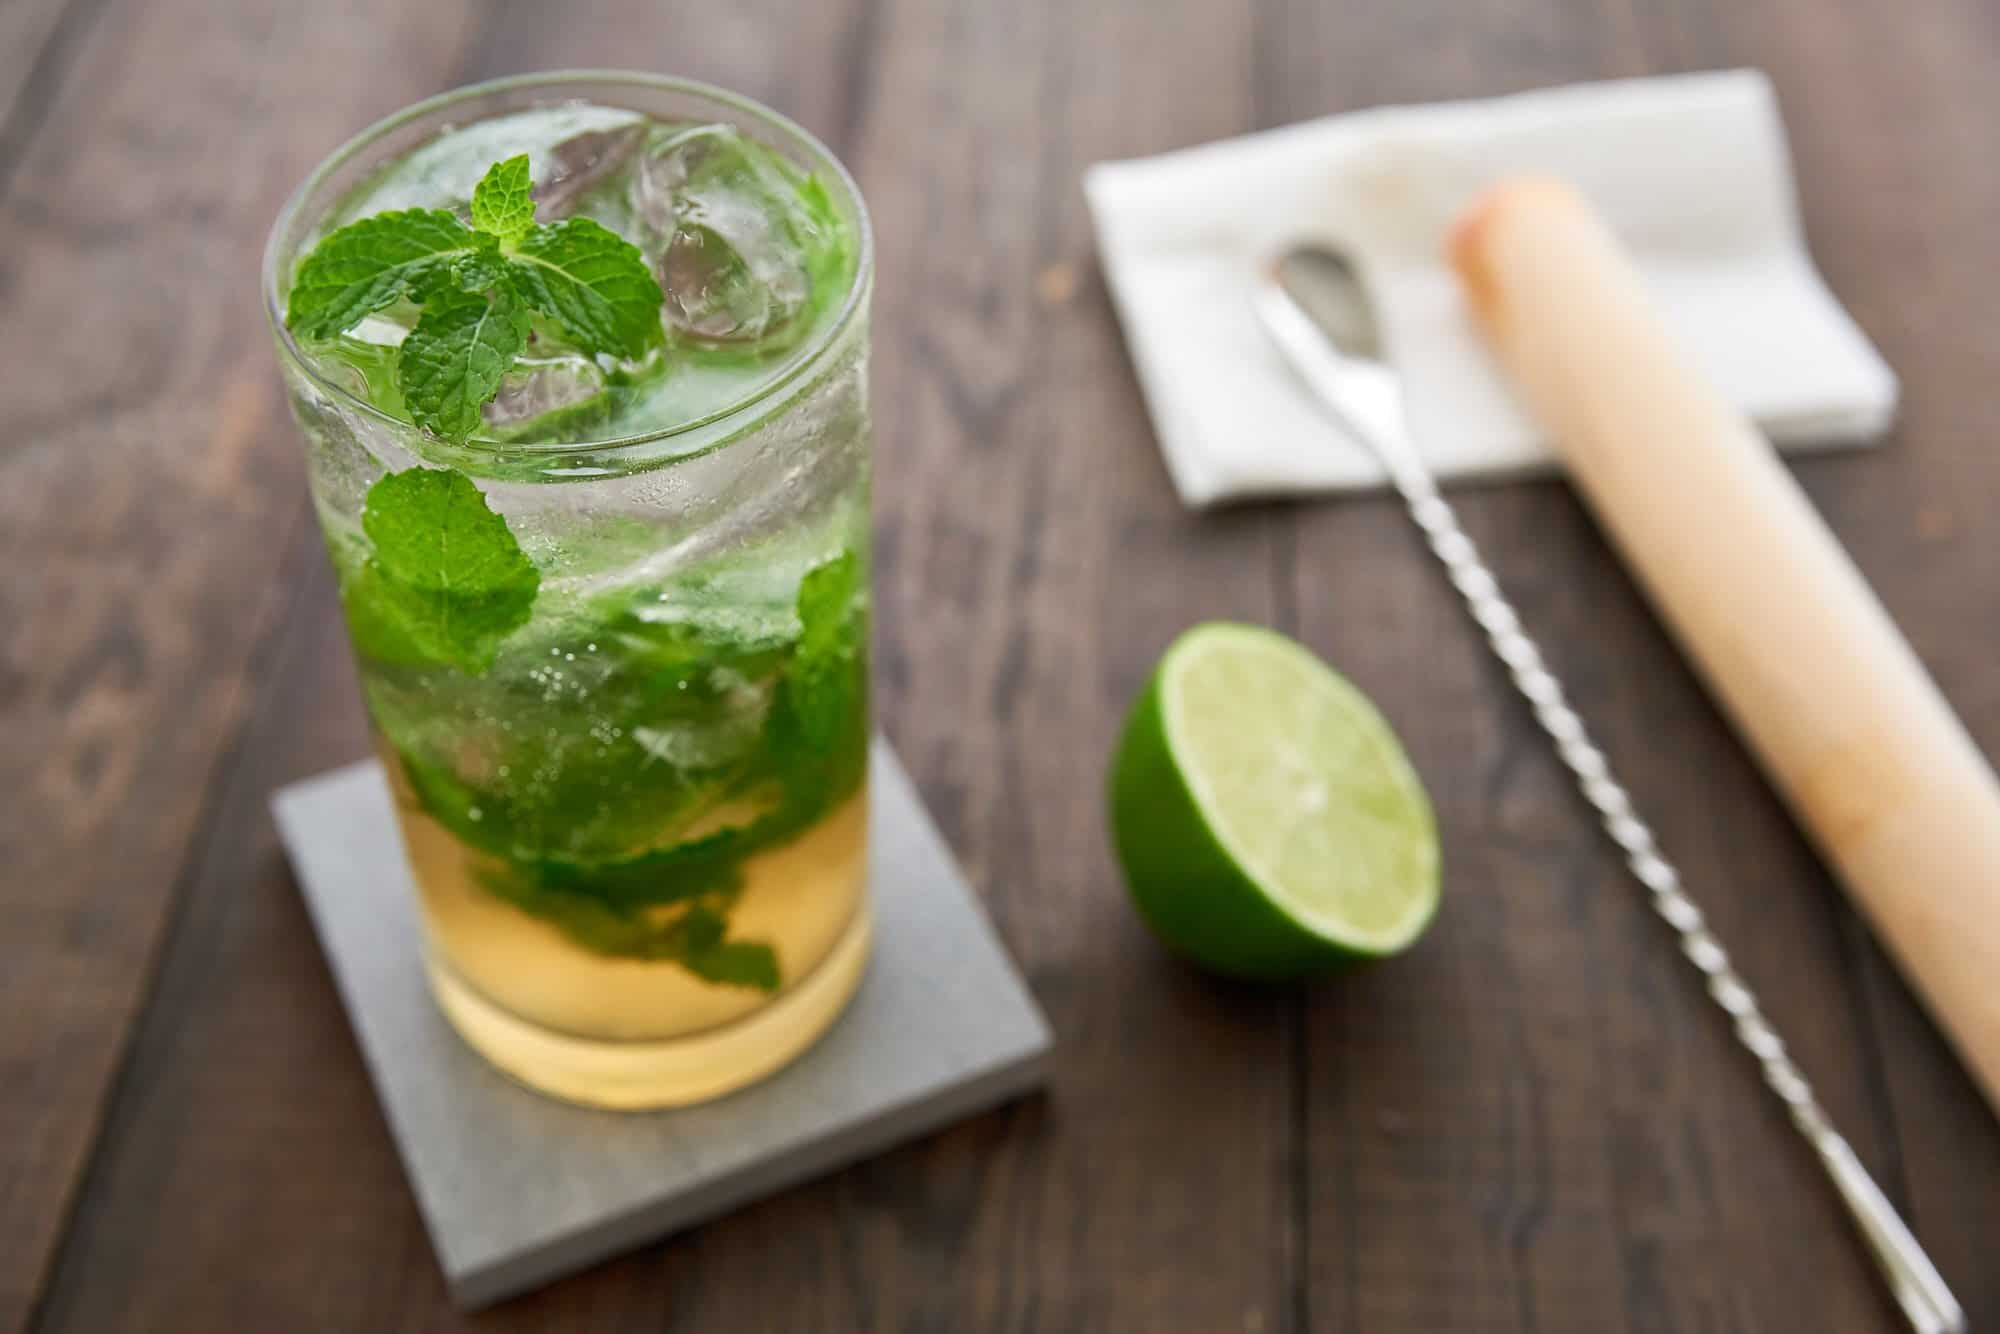 Using brown sugar shochu instead of rum, this updated take on the Cuban classic mojito is delicious.